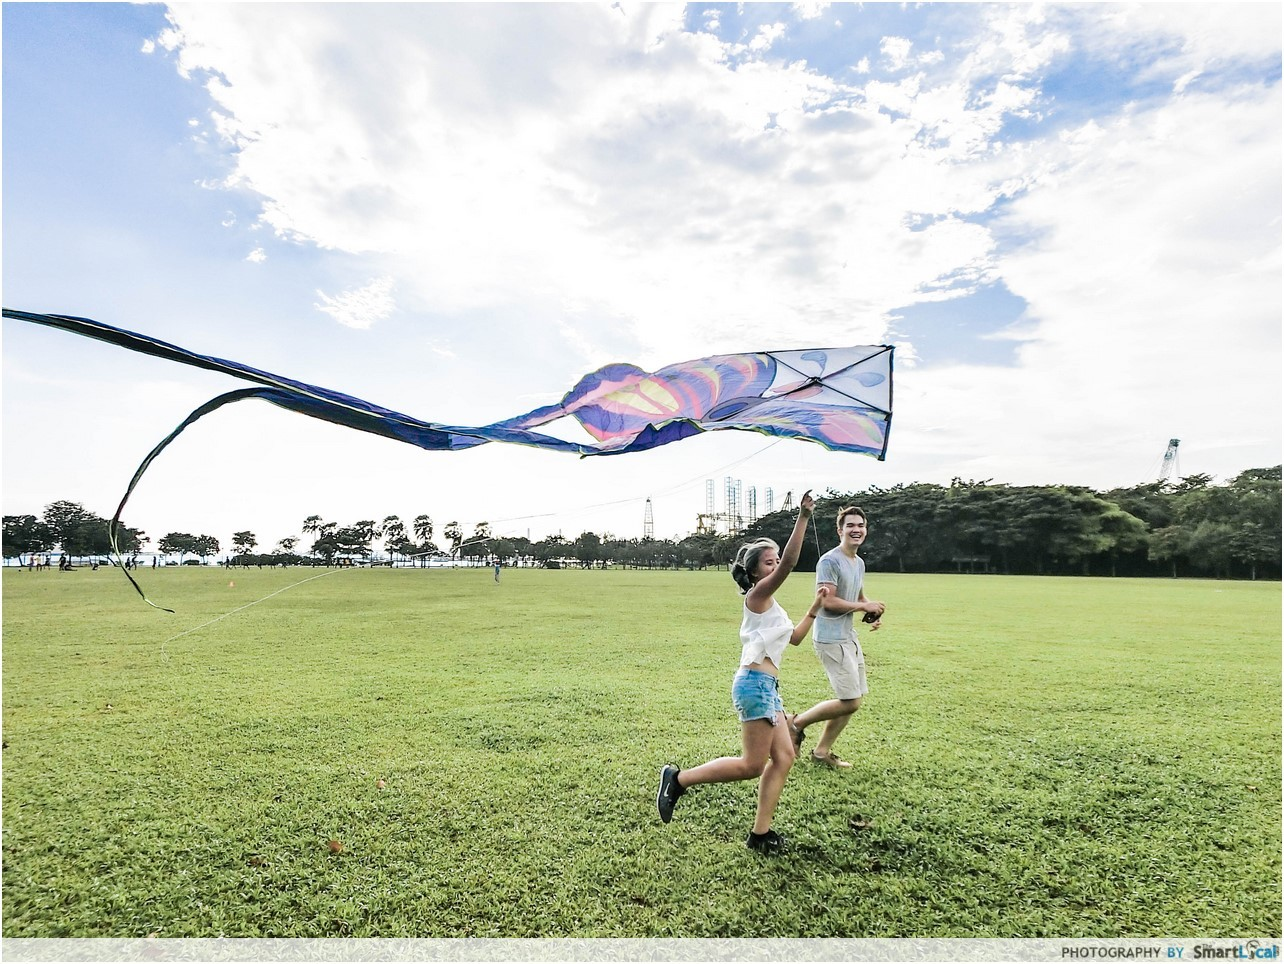 Kite Flying at West Coast Park